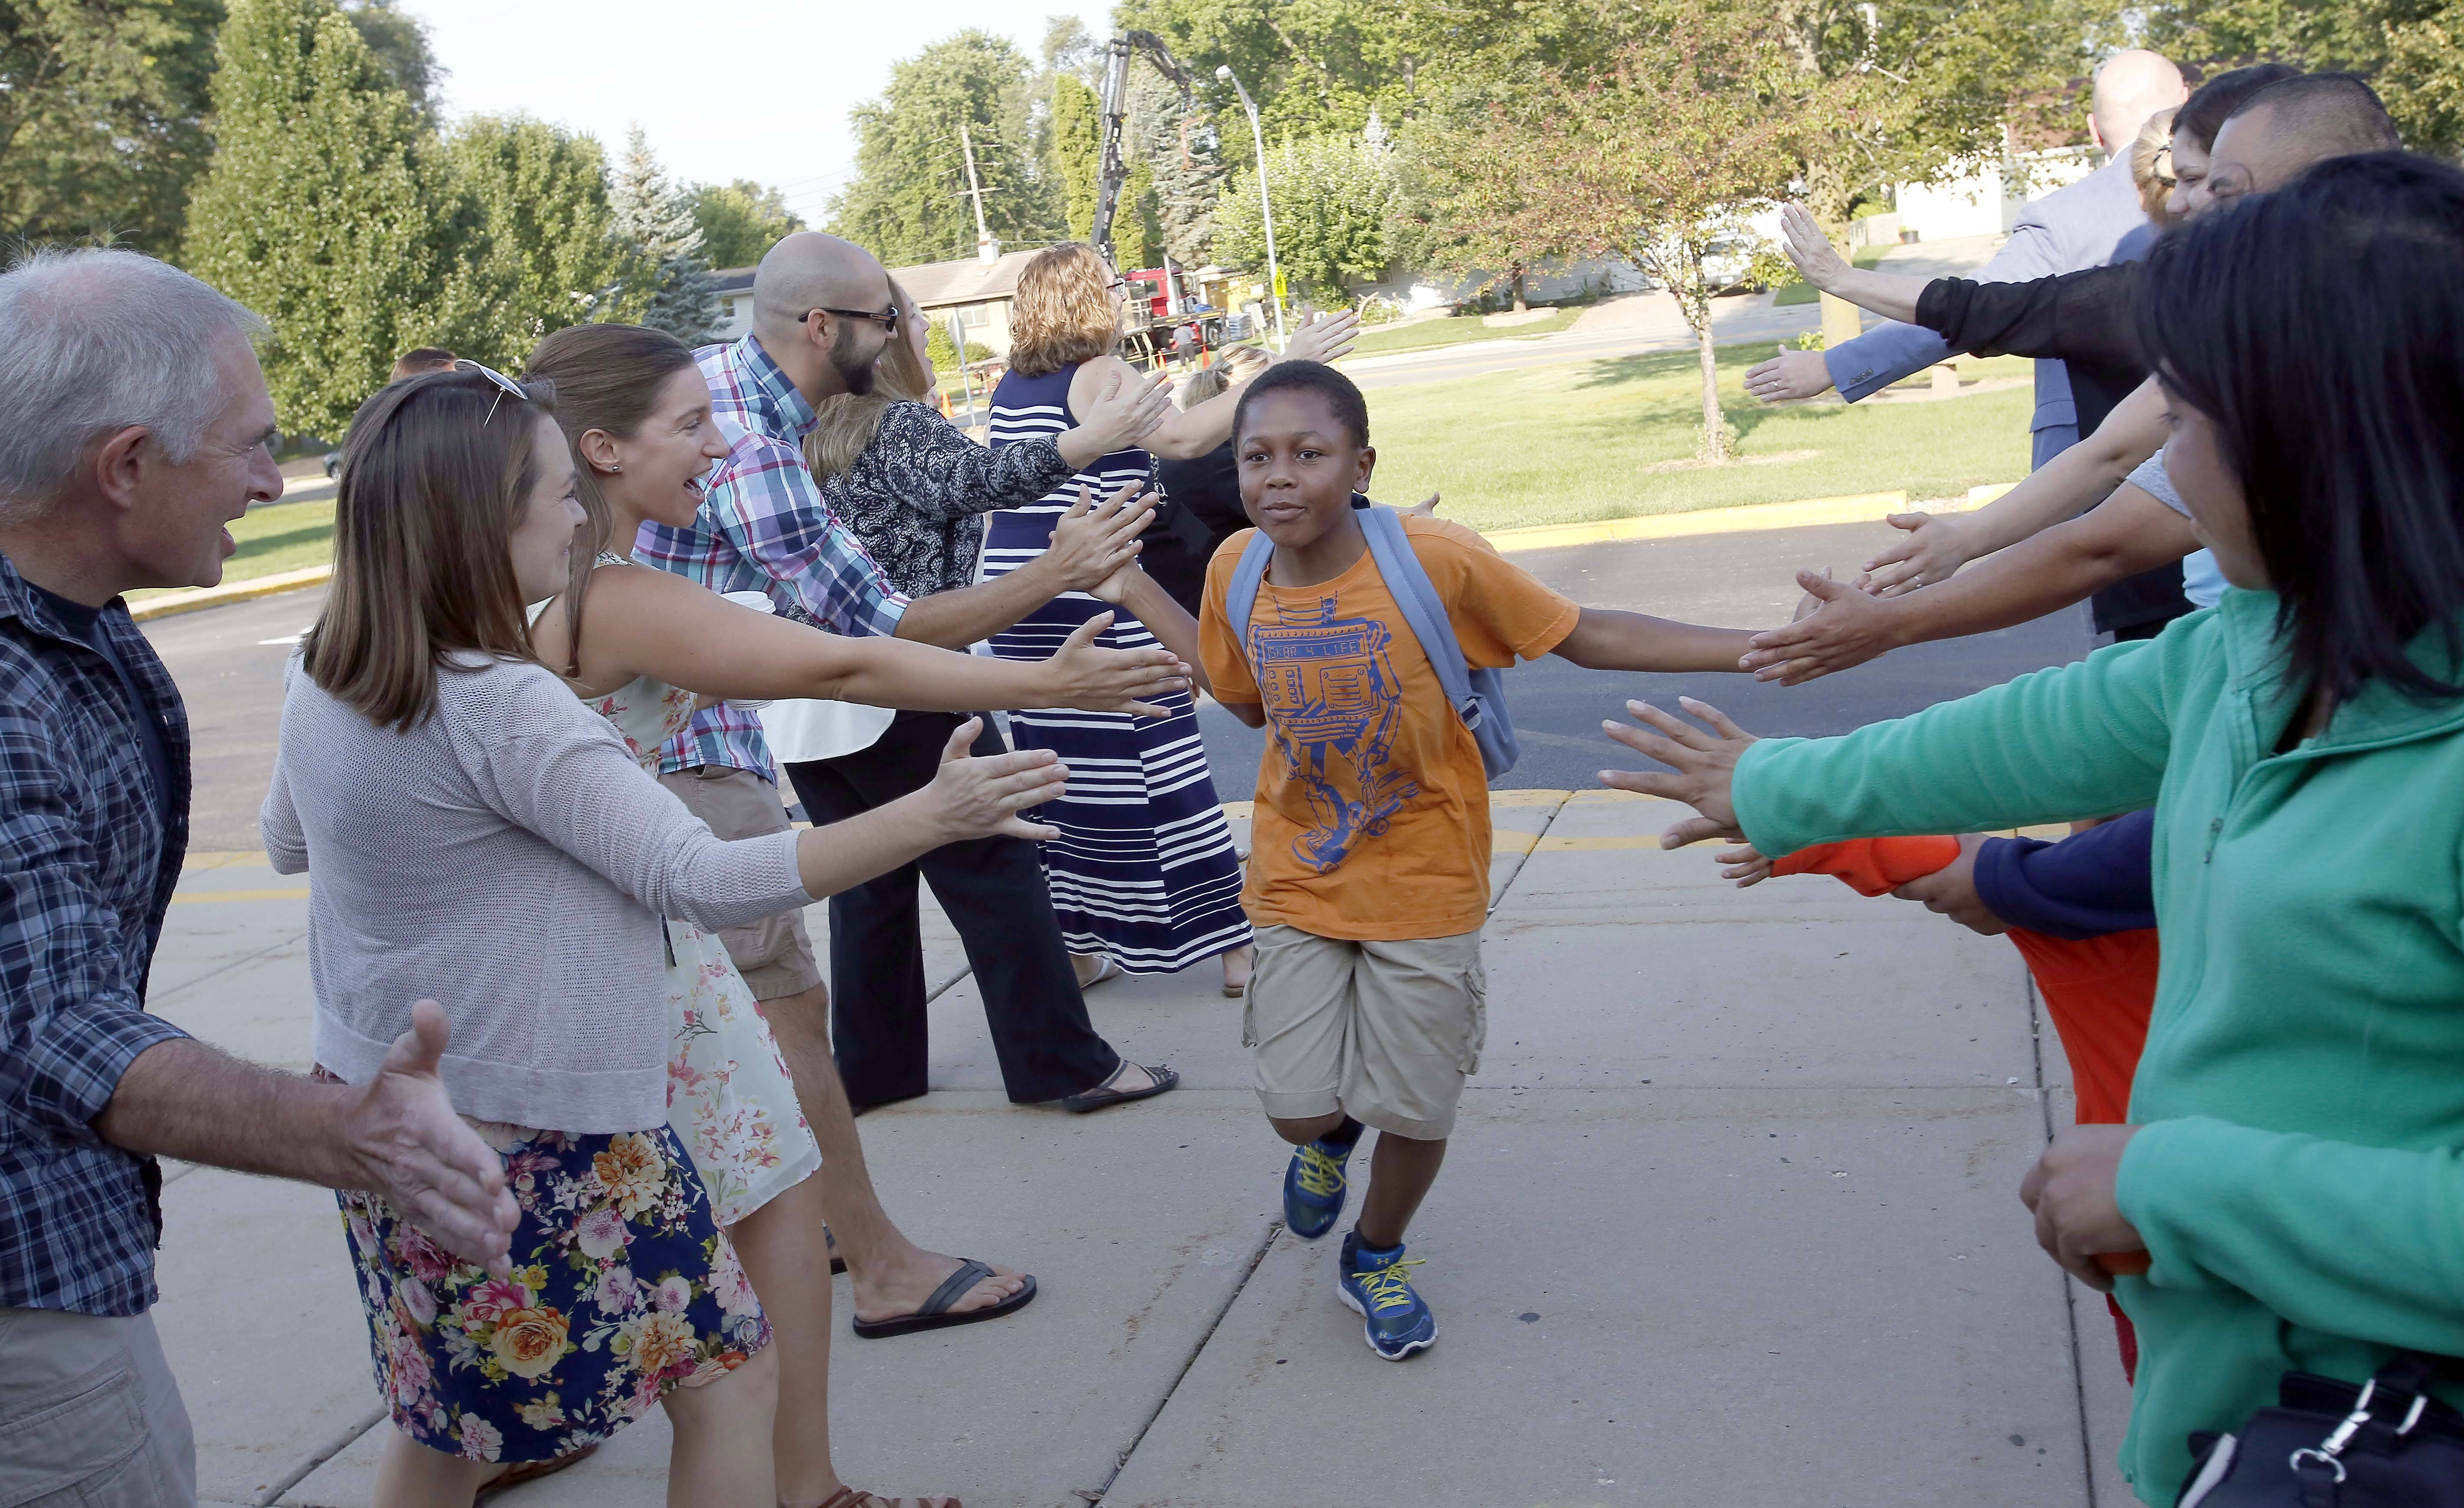 Dominick Roman, 10, runs down the line of high-fives on his way to school Tuesday during the first day of classes at Golfview Elementary School in Carpentersville.